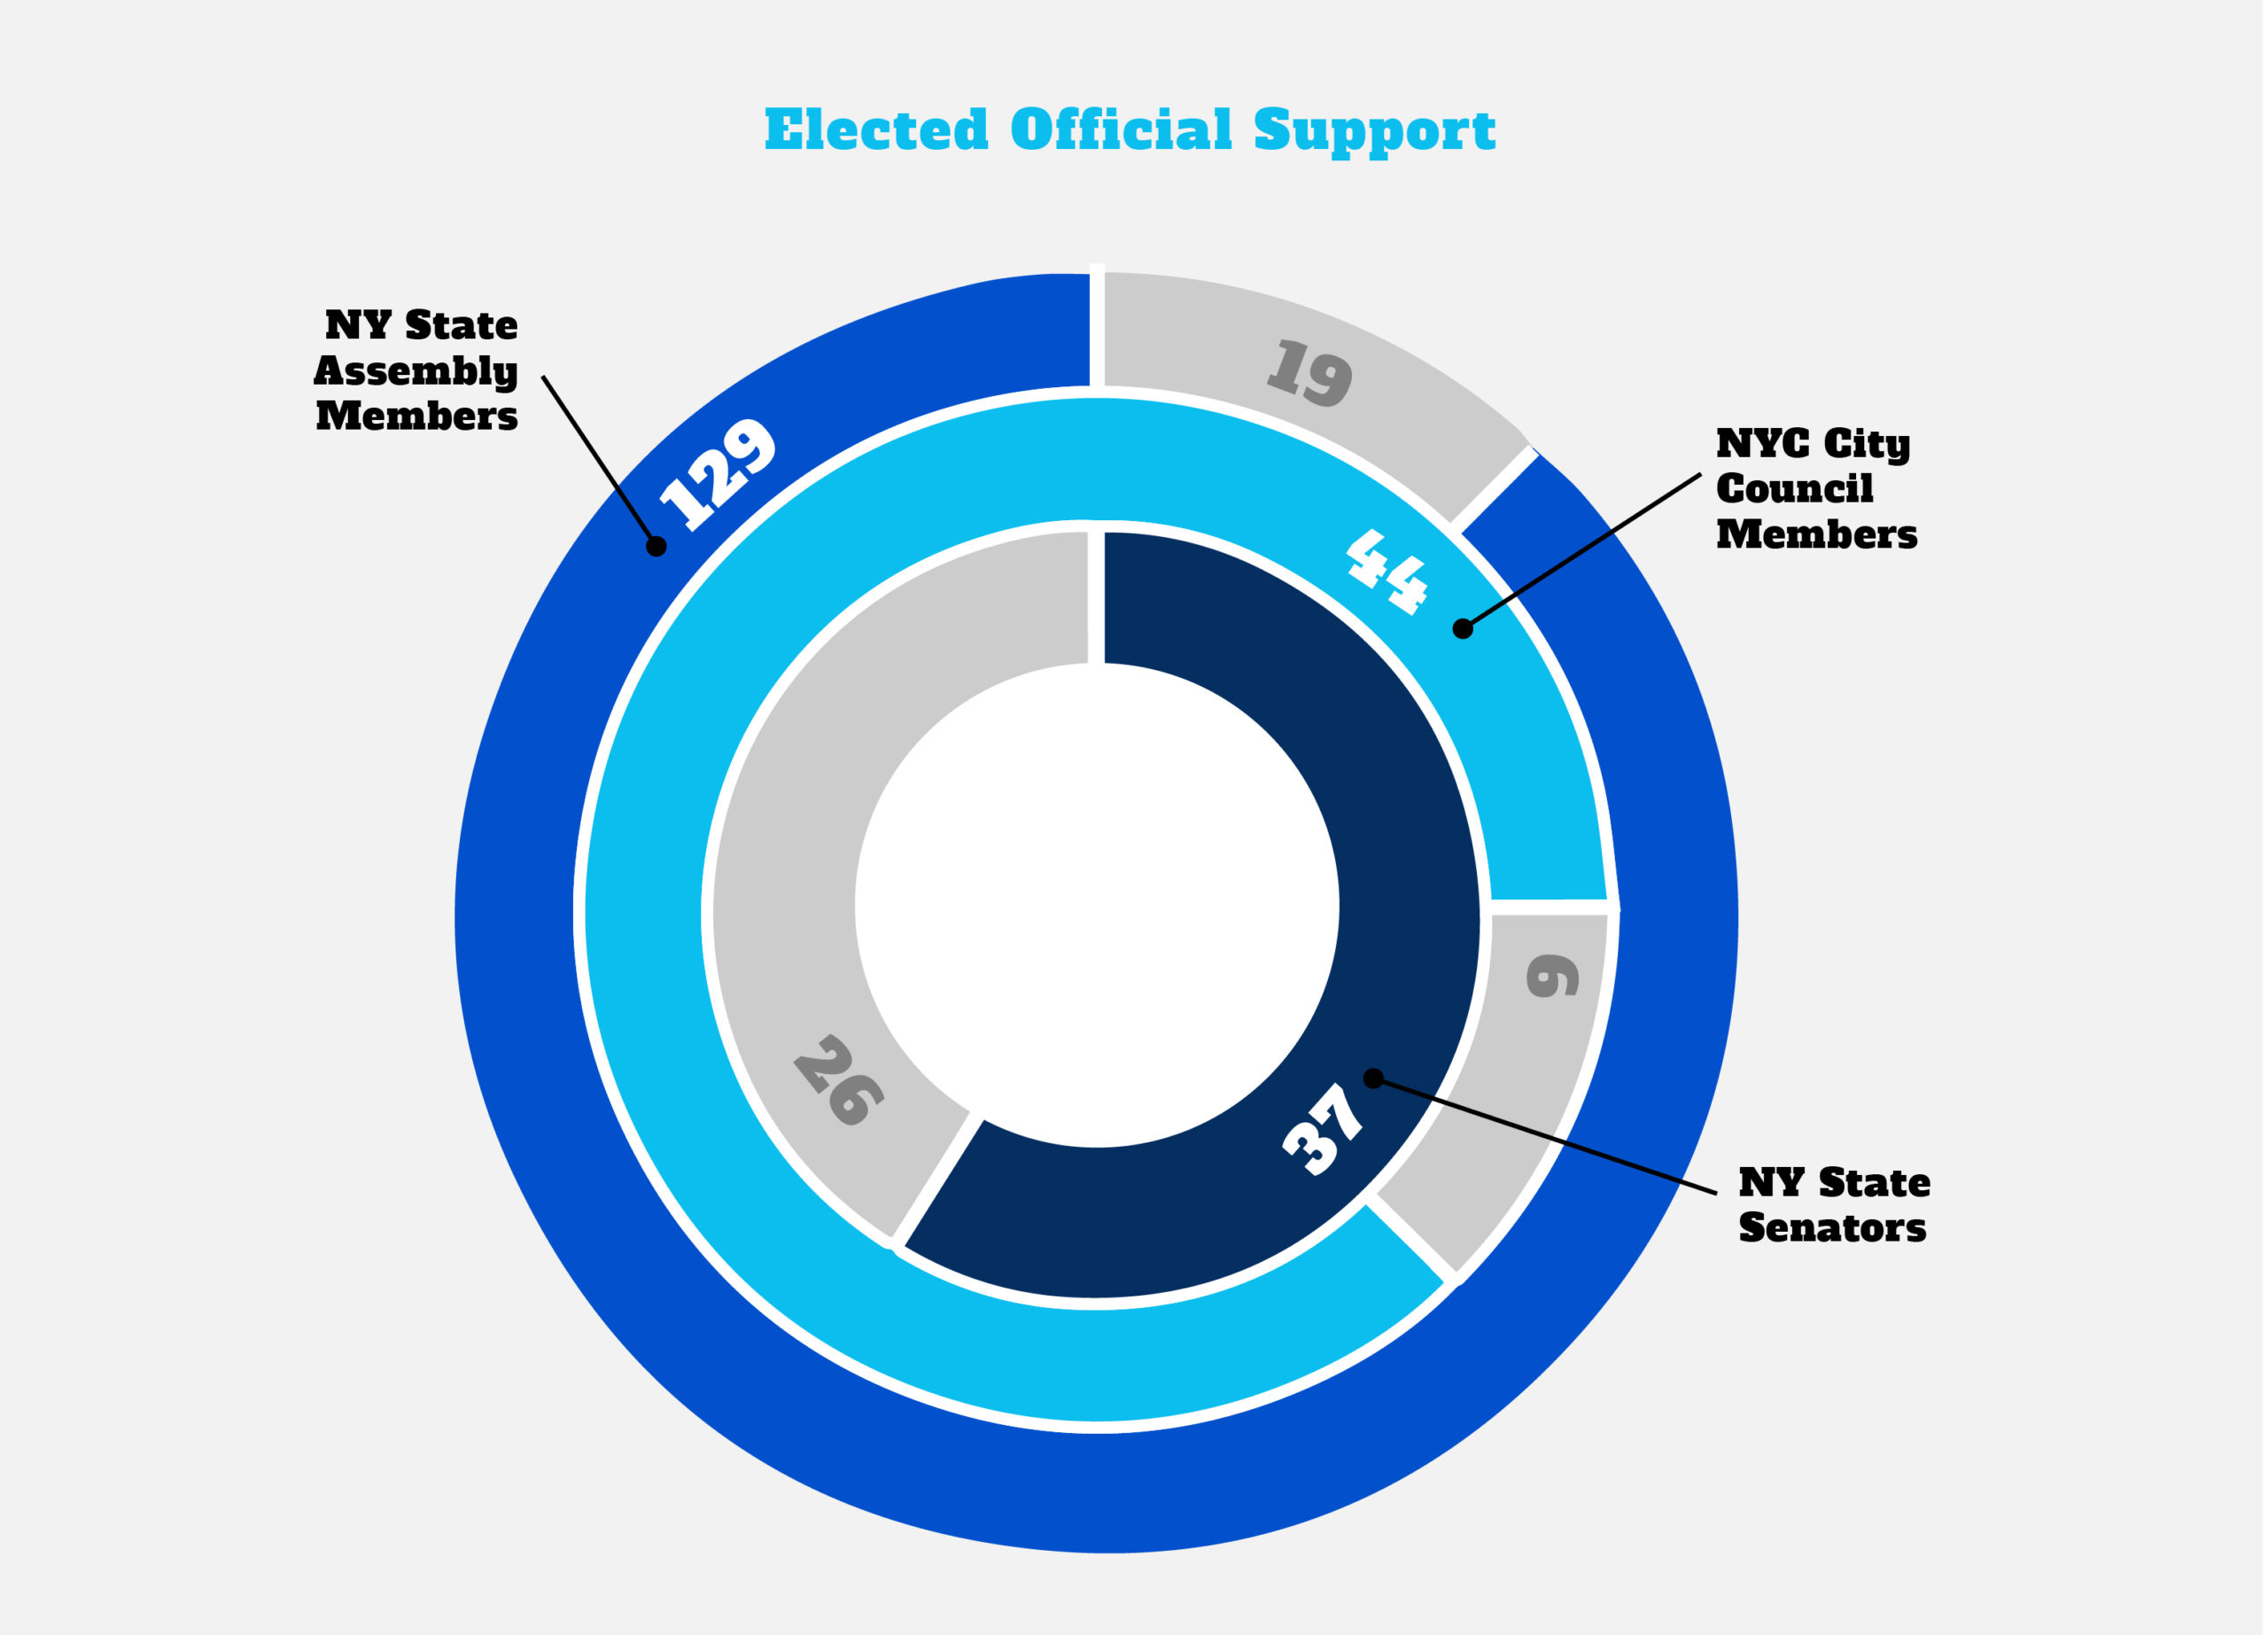 Graph: Elected Official Support